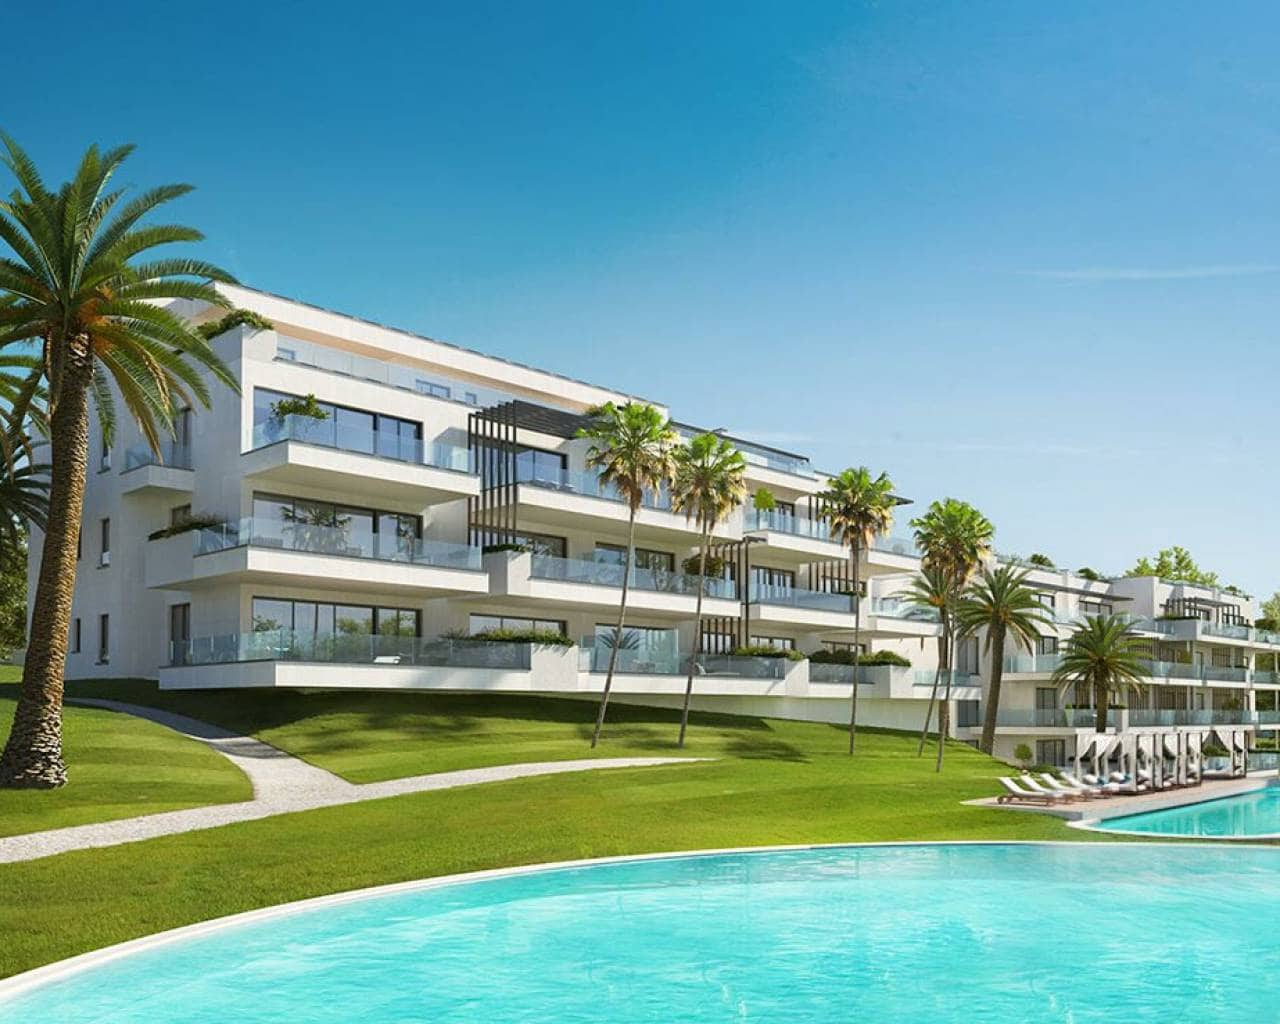 2 bedroom Apartment for sale in Orihuela Costa with pool garage - € 329,000 (Ref: 5750335)